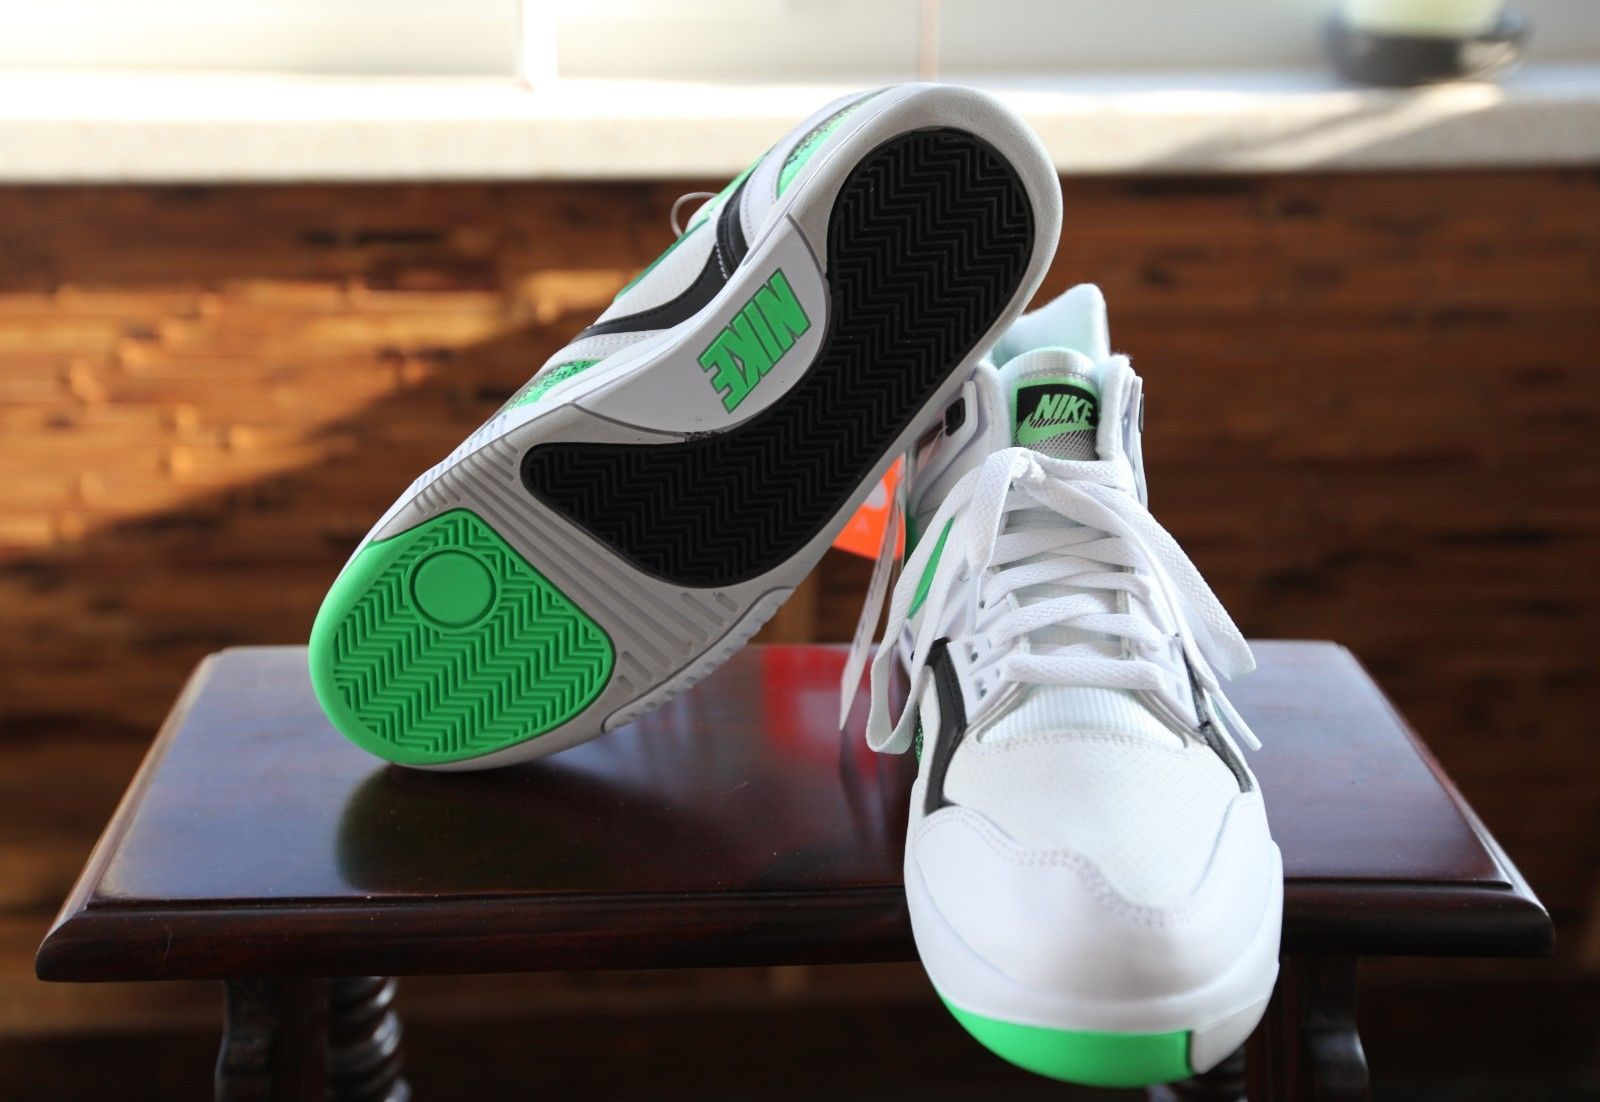 nike-air-tech-challenge-ii-white-black-poison-green-new-images-4